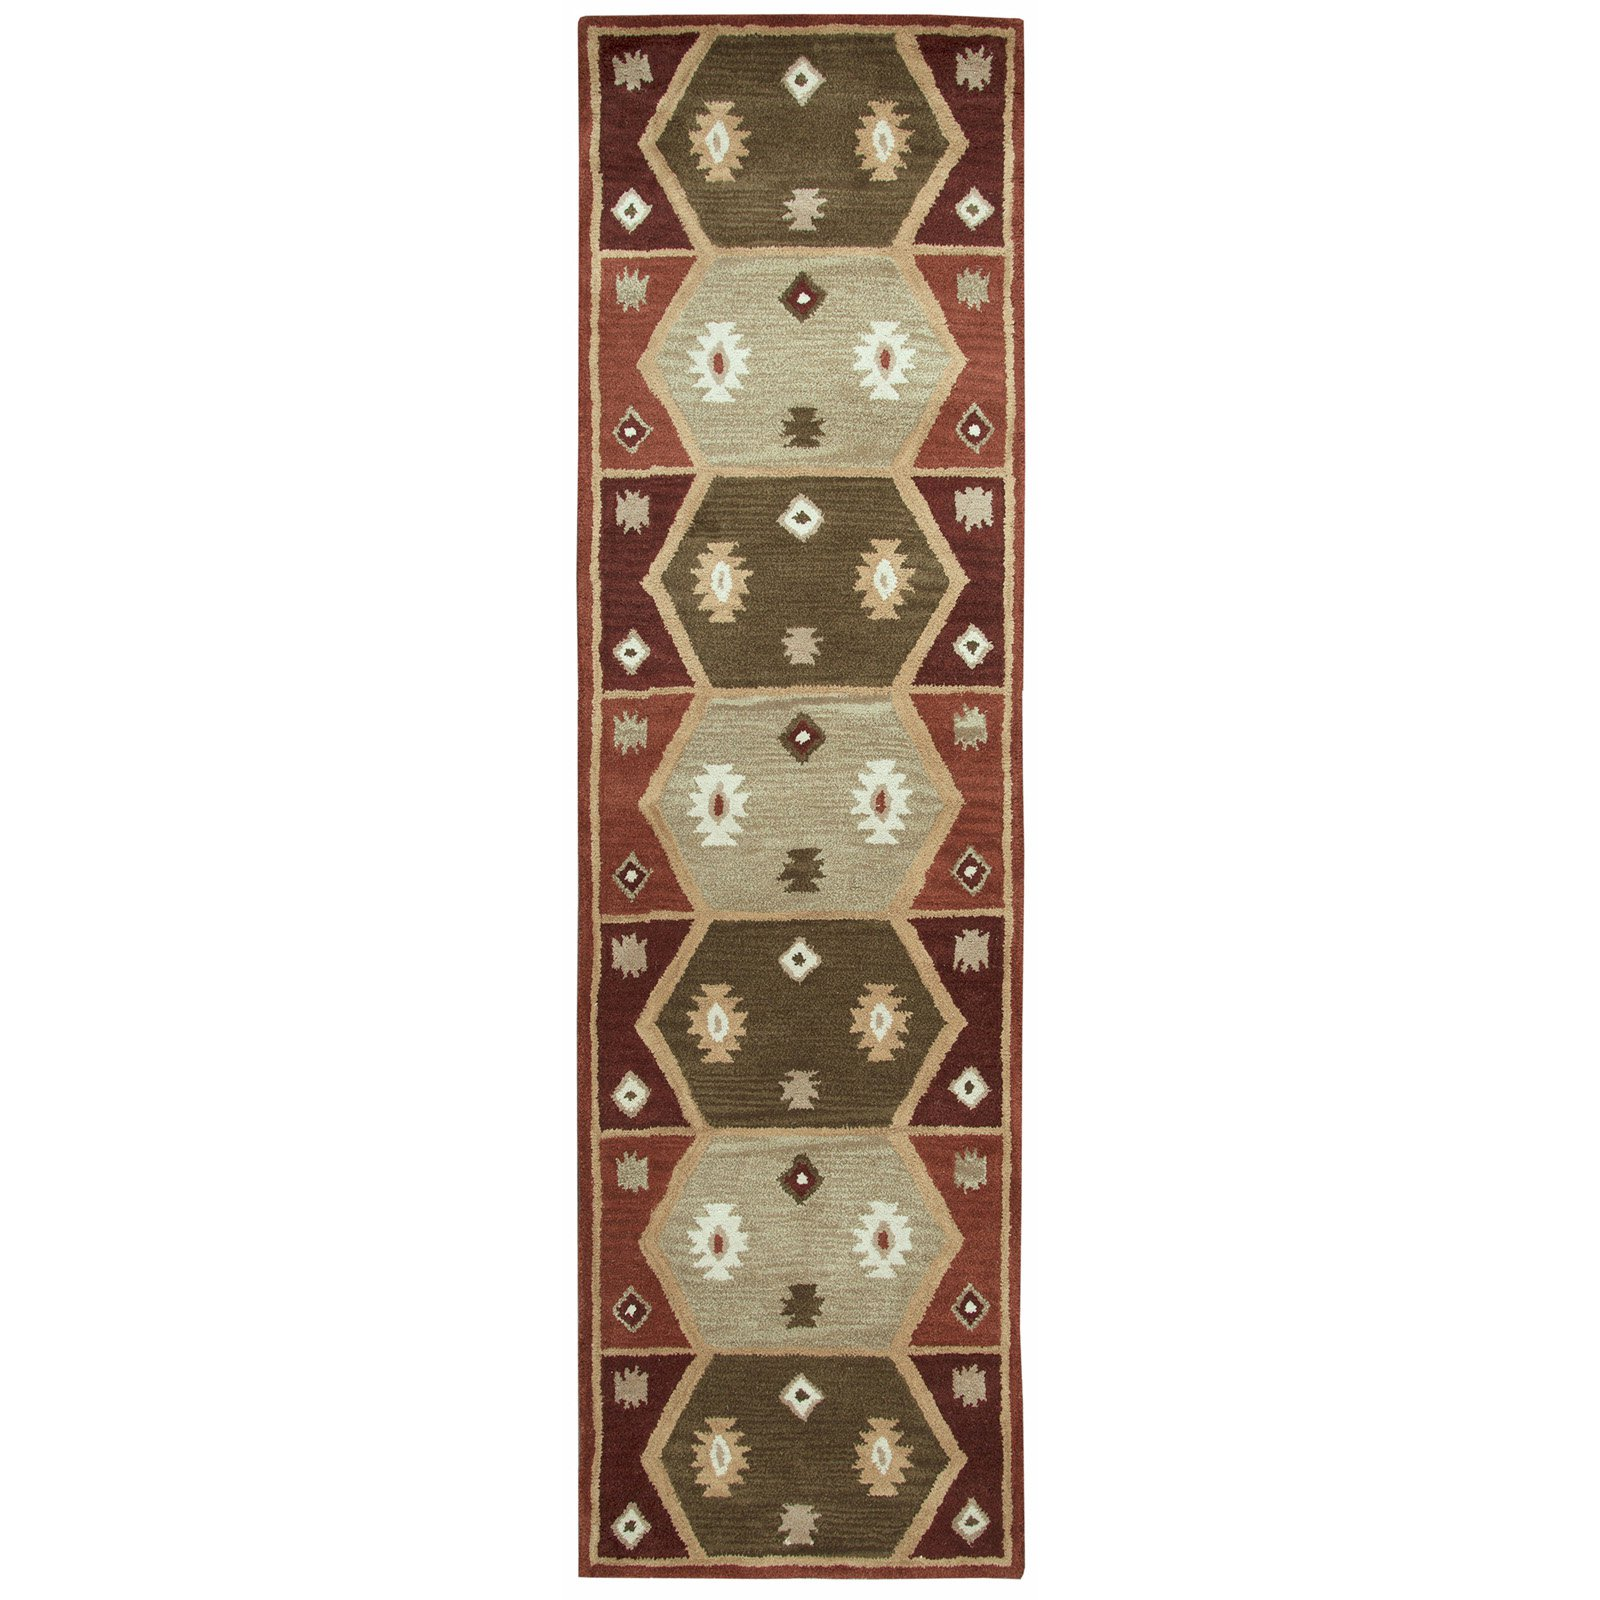 Rizzy Home Southwest SU1937 Rug - (9 Foot x 12 Foot)